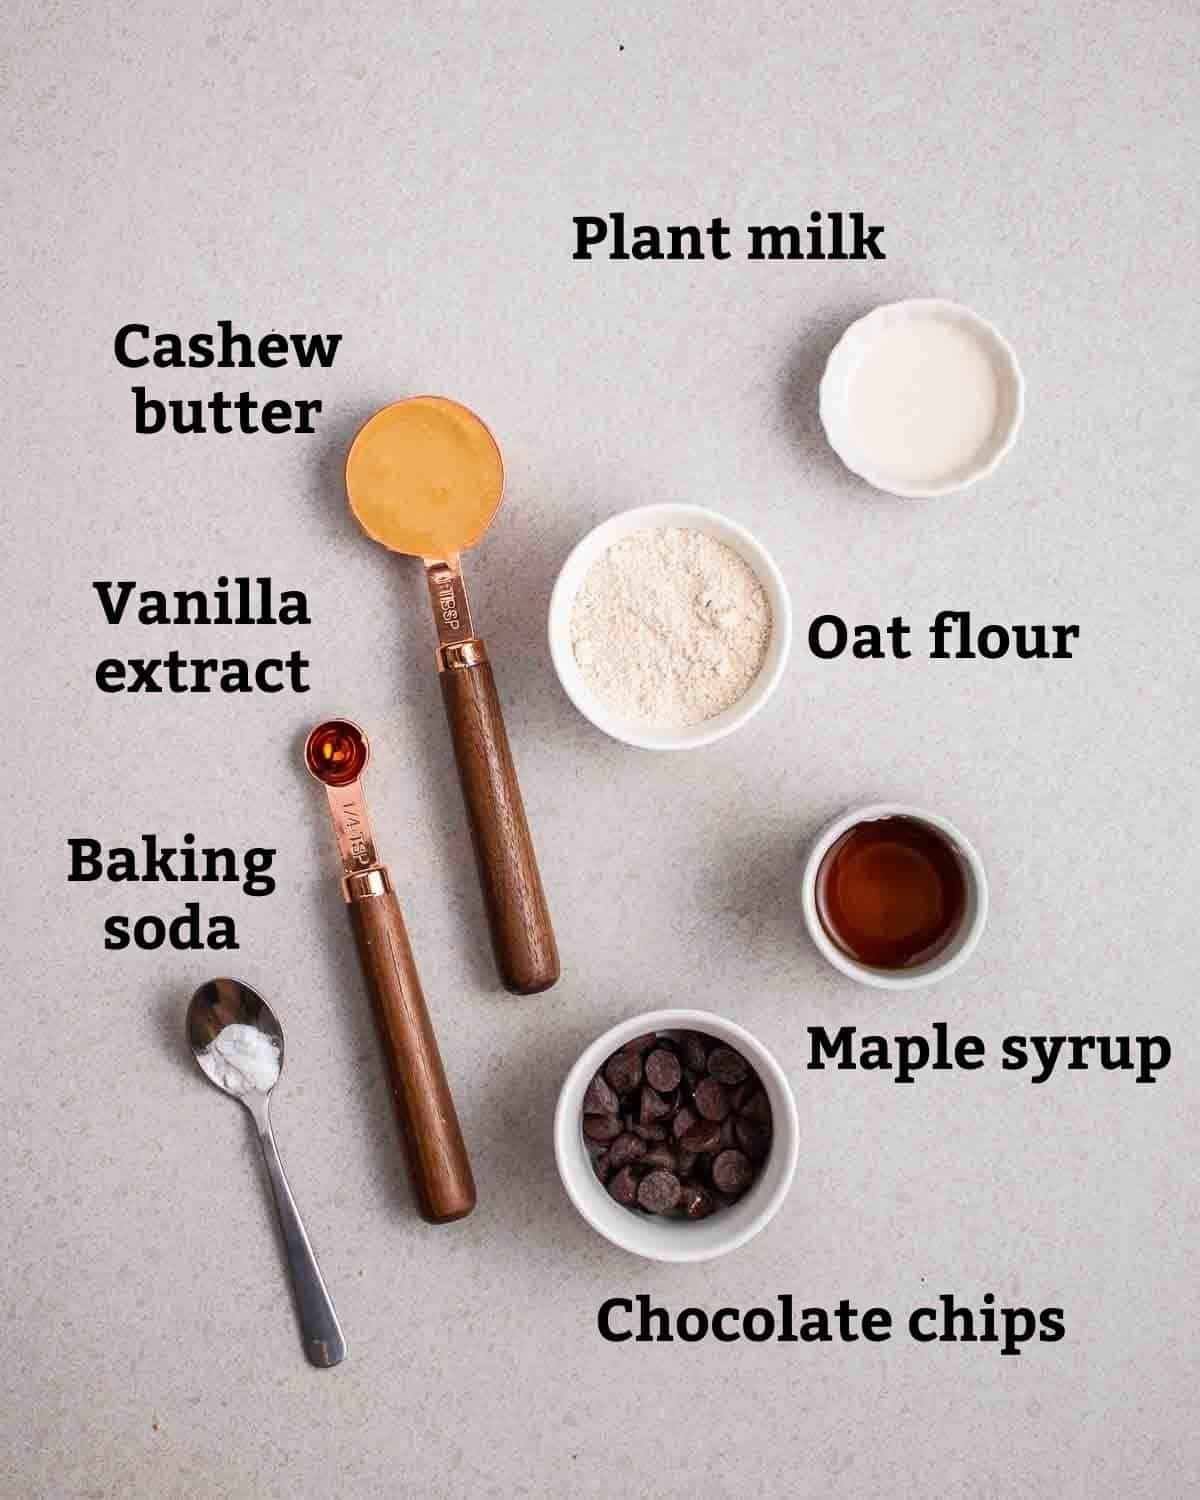 Ingredients needed like oat flour, maple syrup, cashew butter and milk on a grey background.